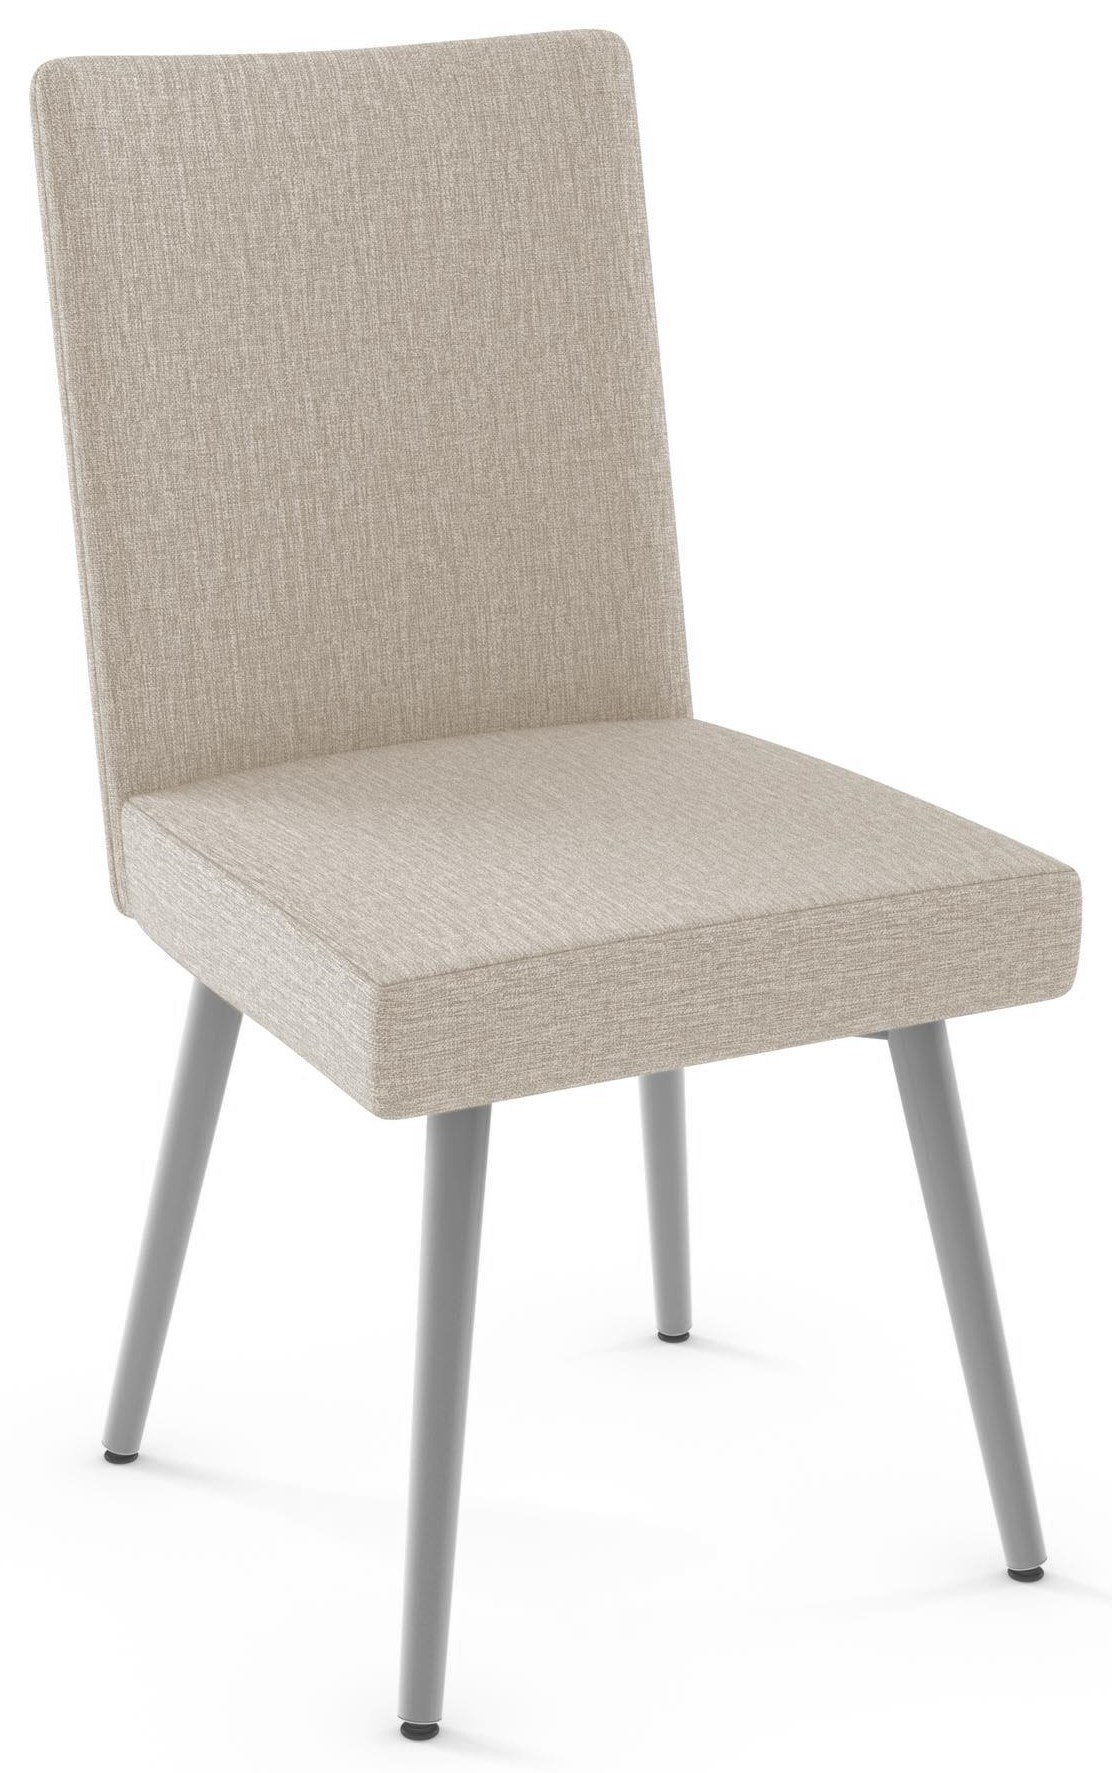 Webber Chair by Amisco at HomeWorld Furniture